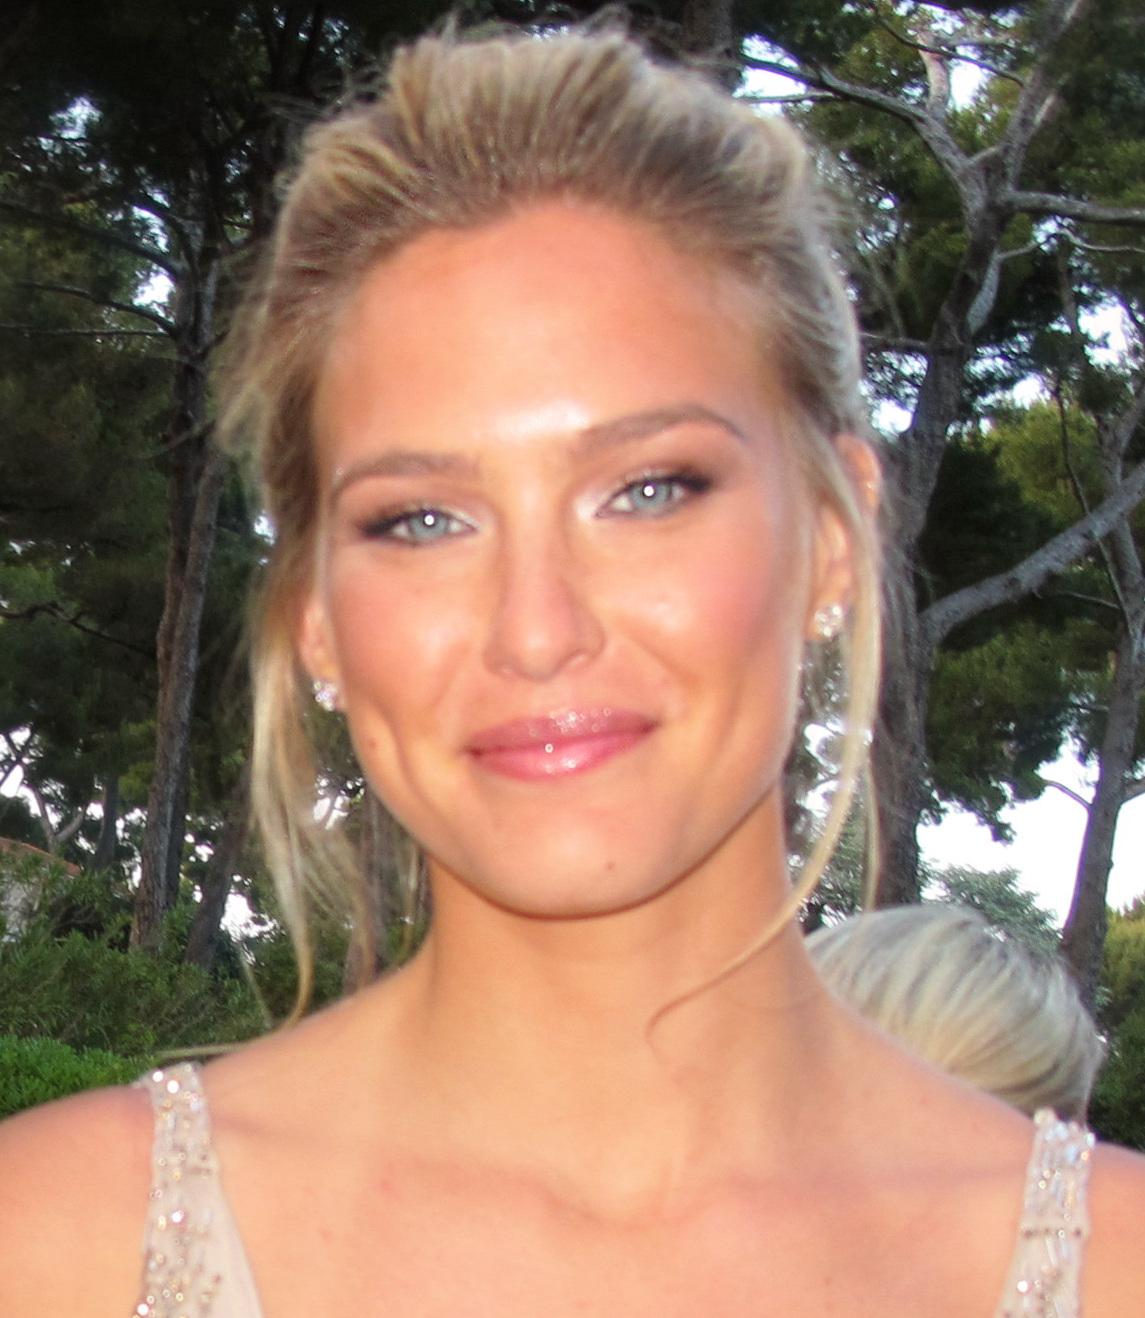 Bar Refaeli - Wikipedi... Bar Refaeli